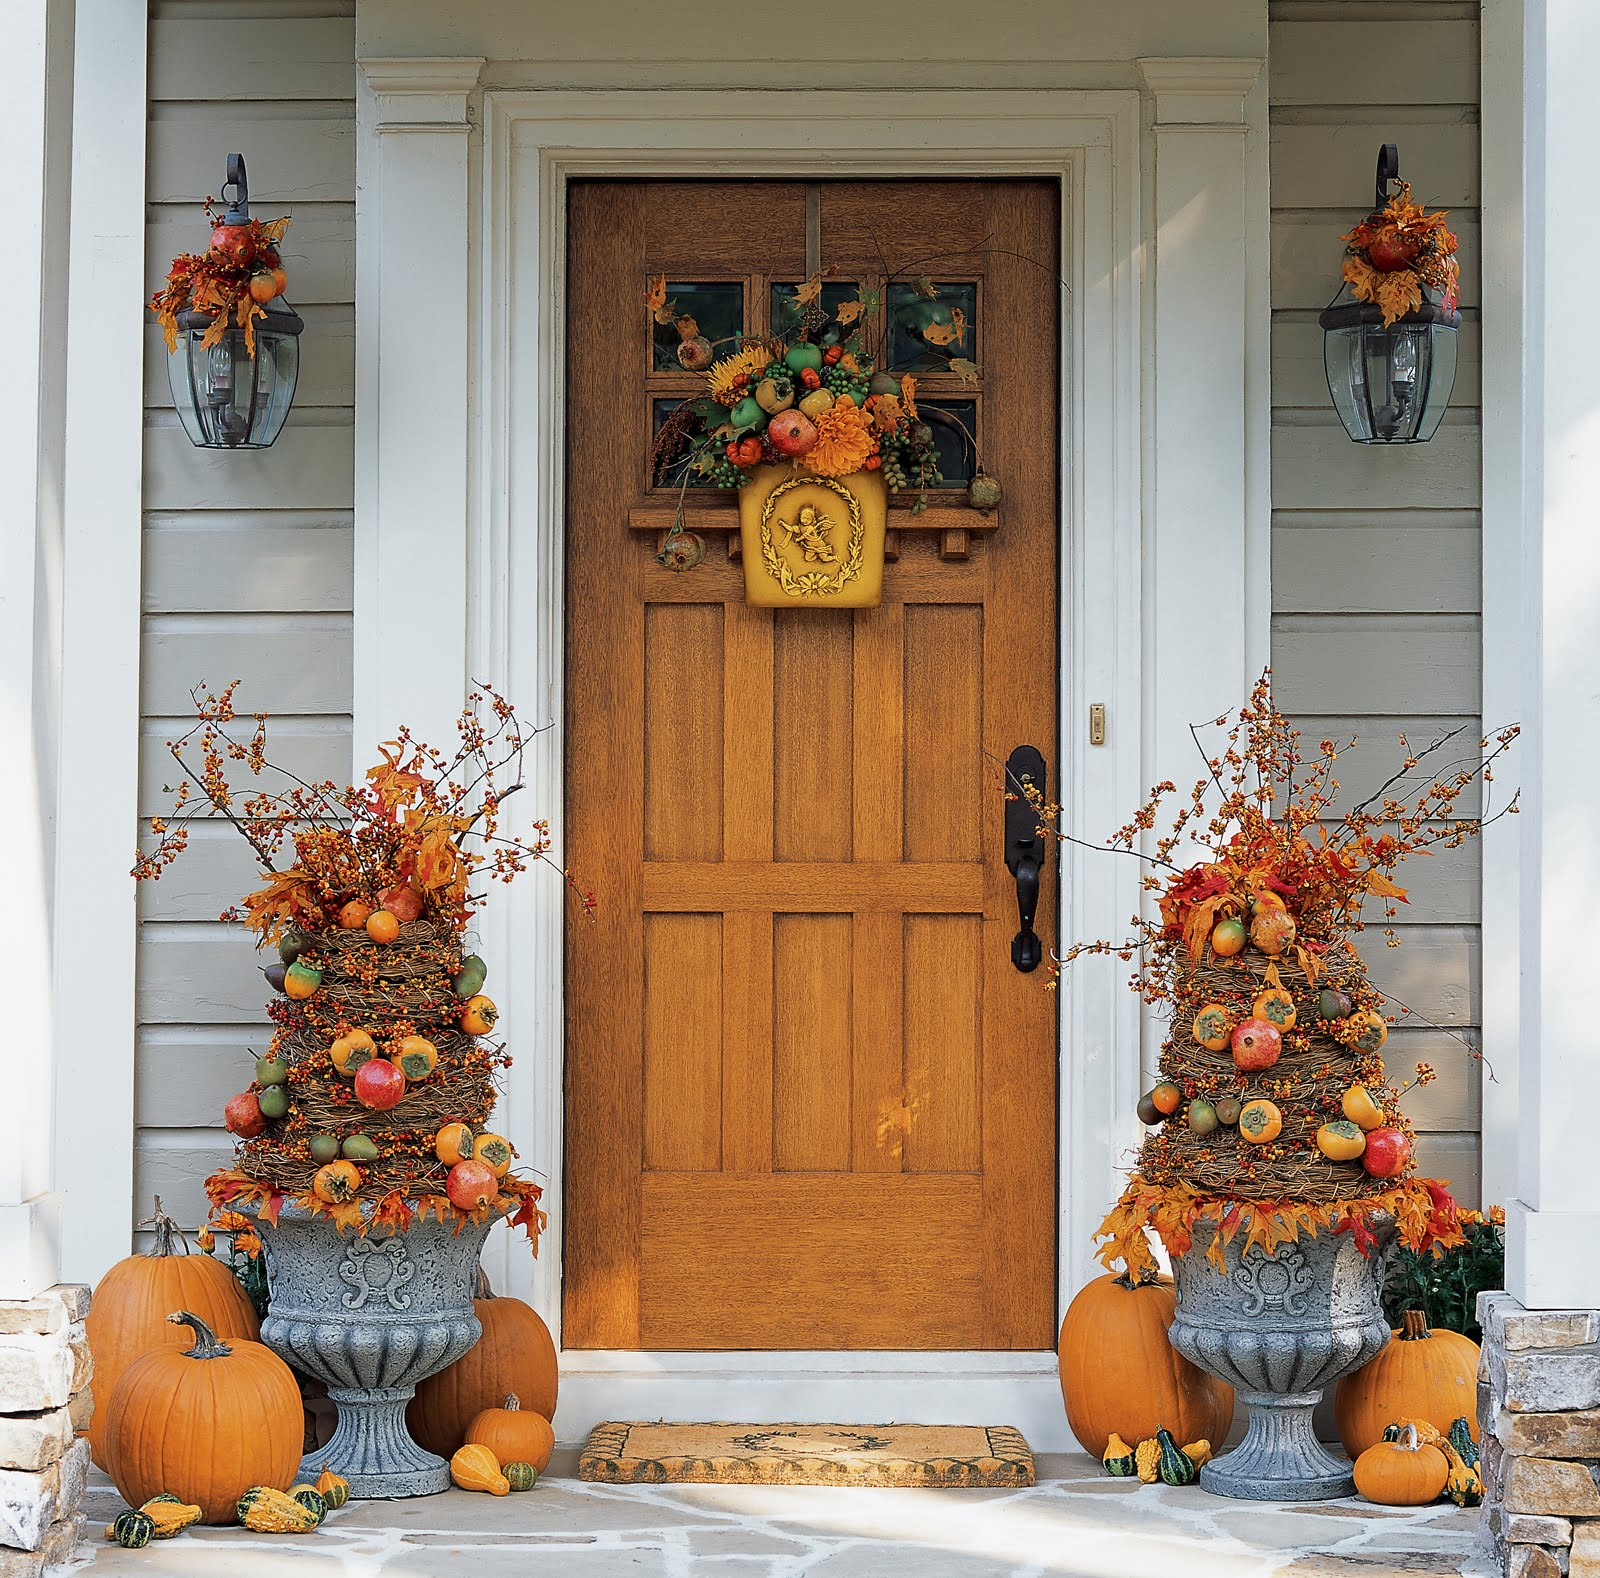 Autumn Yard Decorations: Front Door Fall Beauty